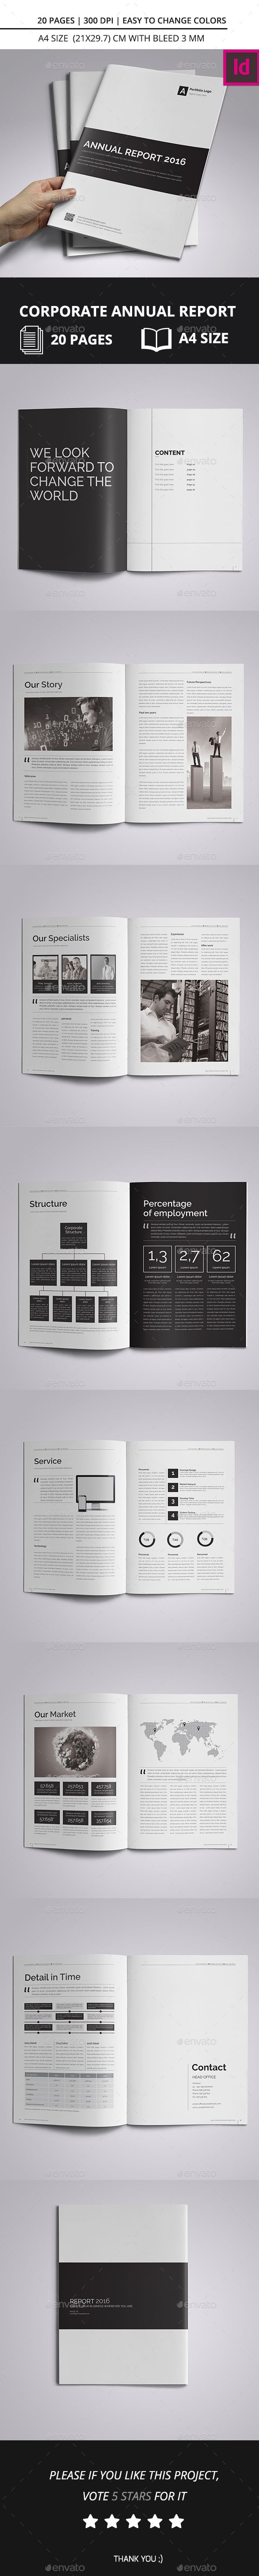 Corporate Annual Report Brochure 2016 A4 Template InDesign INDD #design Download: http://graphicriver.net/item/corporate-annual-report-brochure-2016-a4/14040581?ref=ksioks